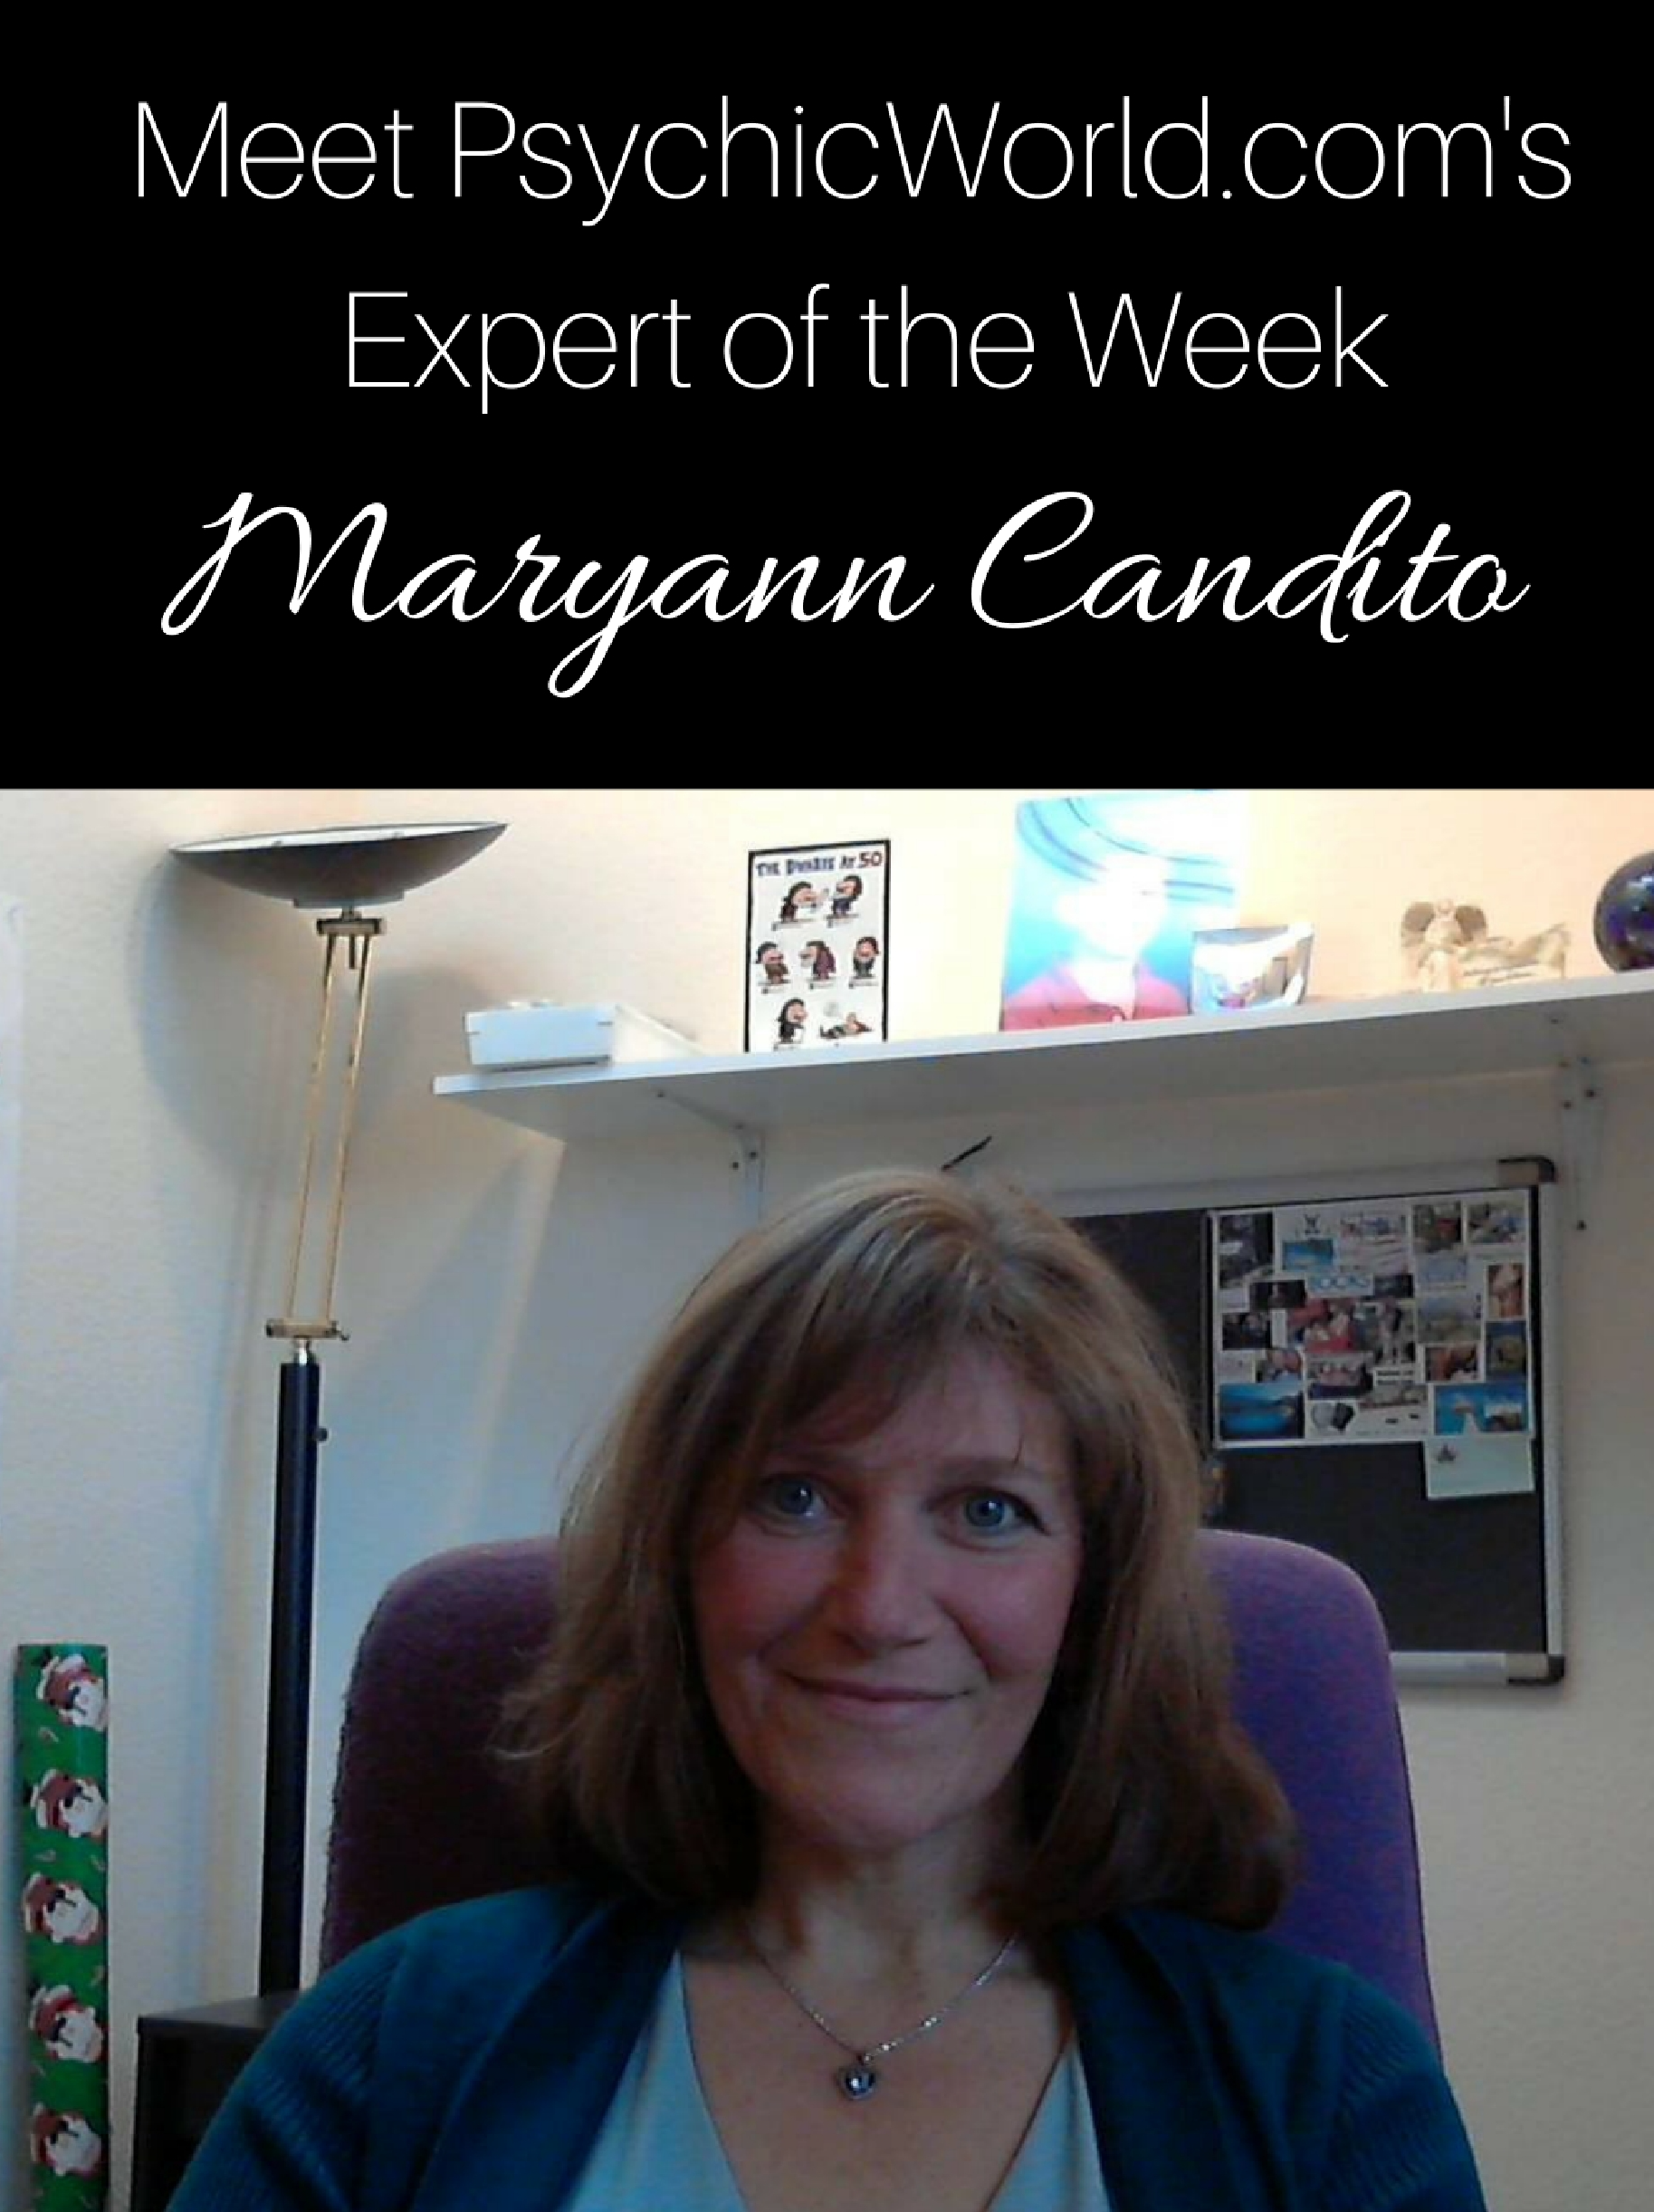 Meet Our Featured Expert of the Week, Maryann Candito